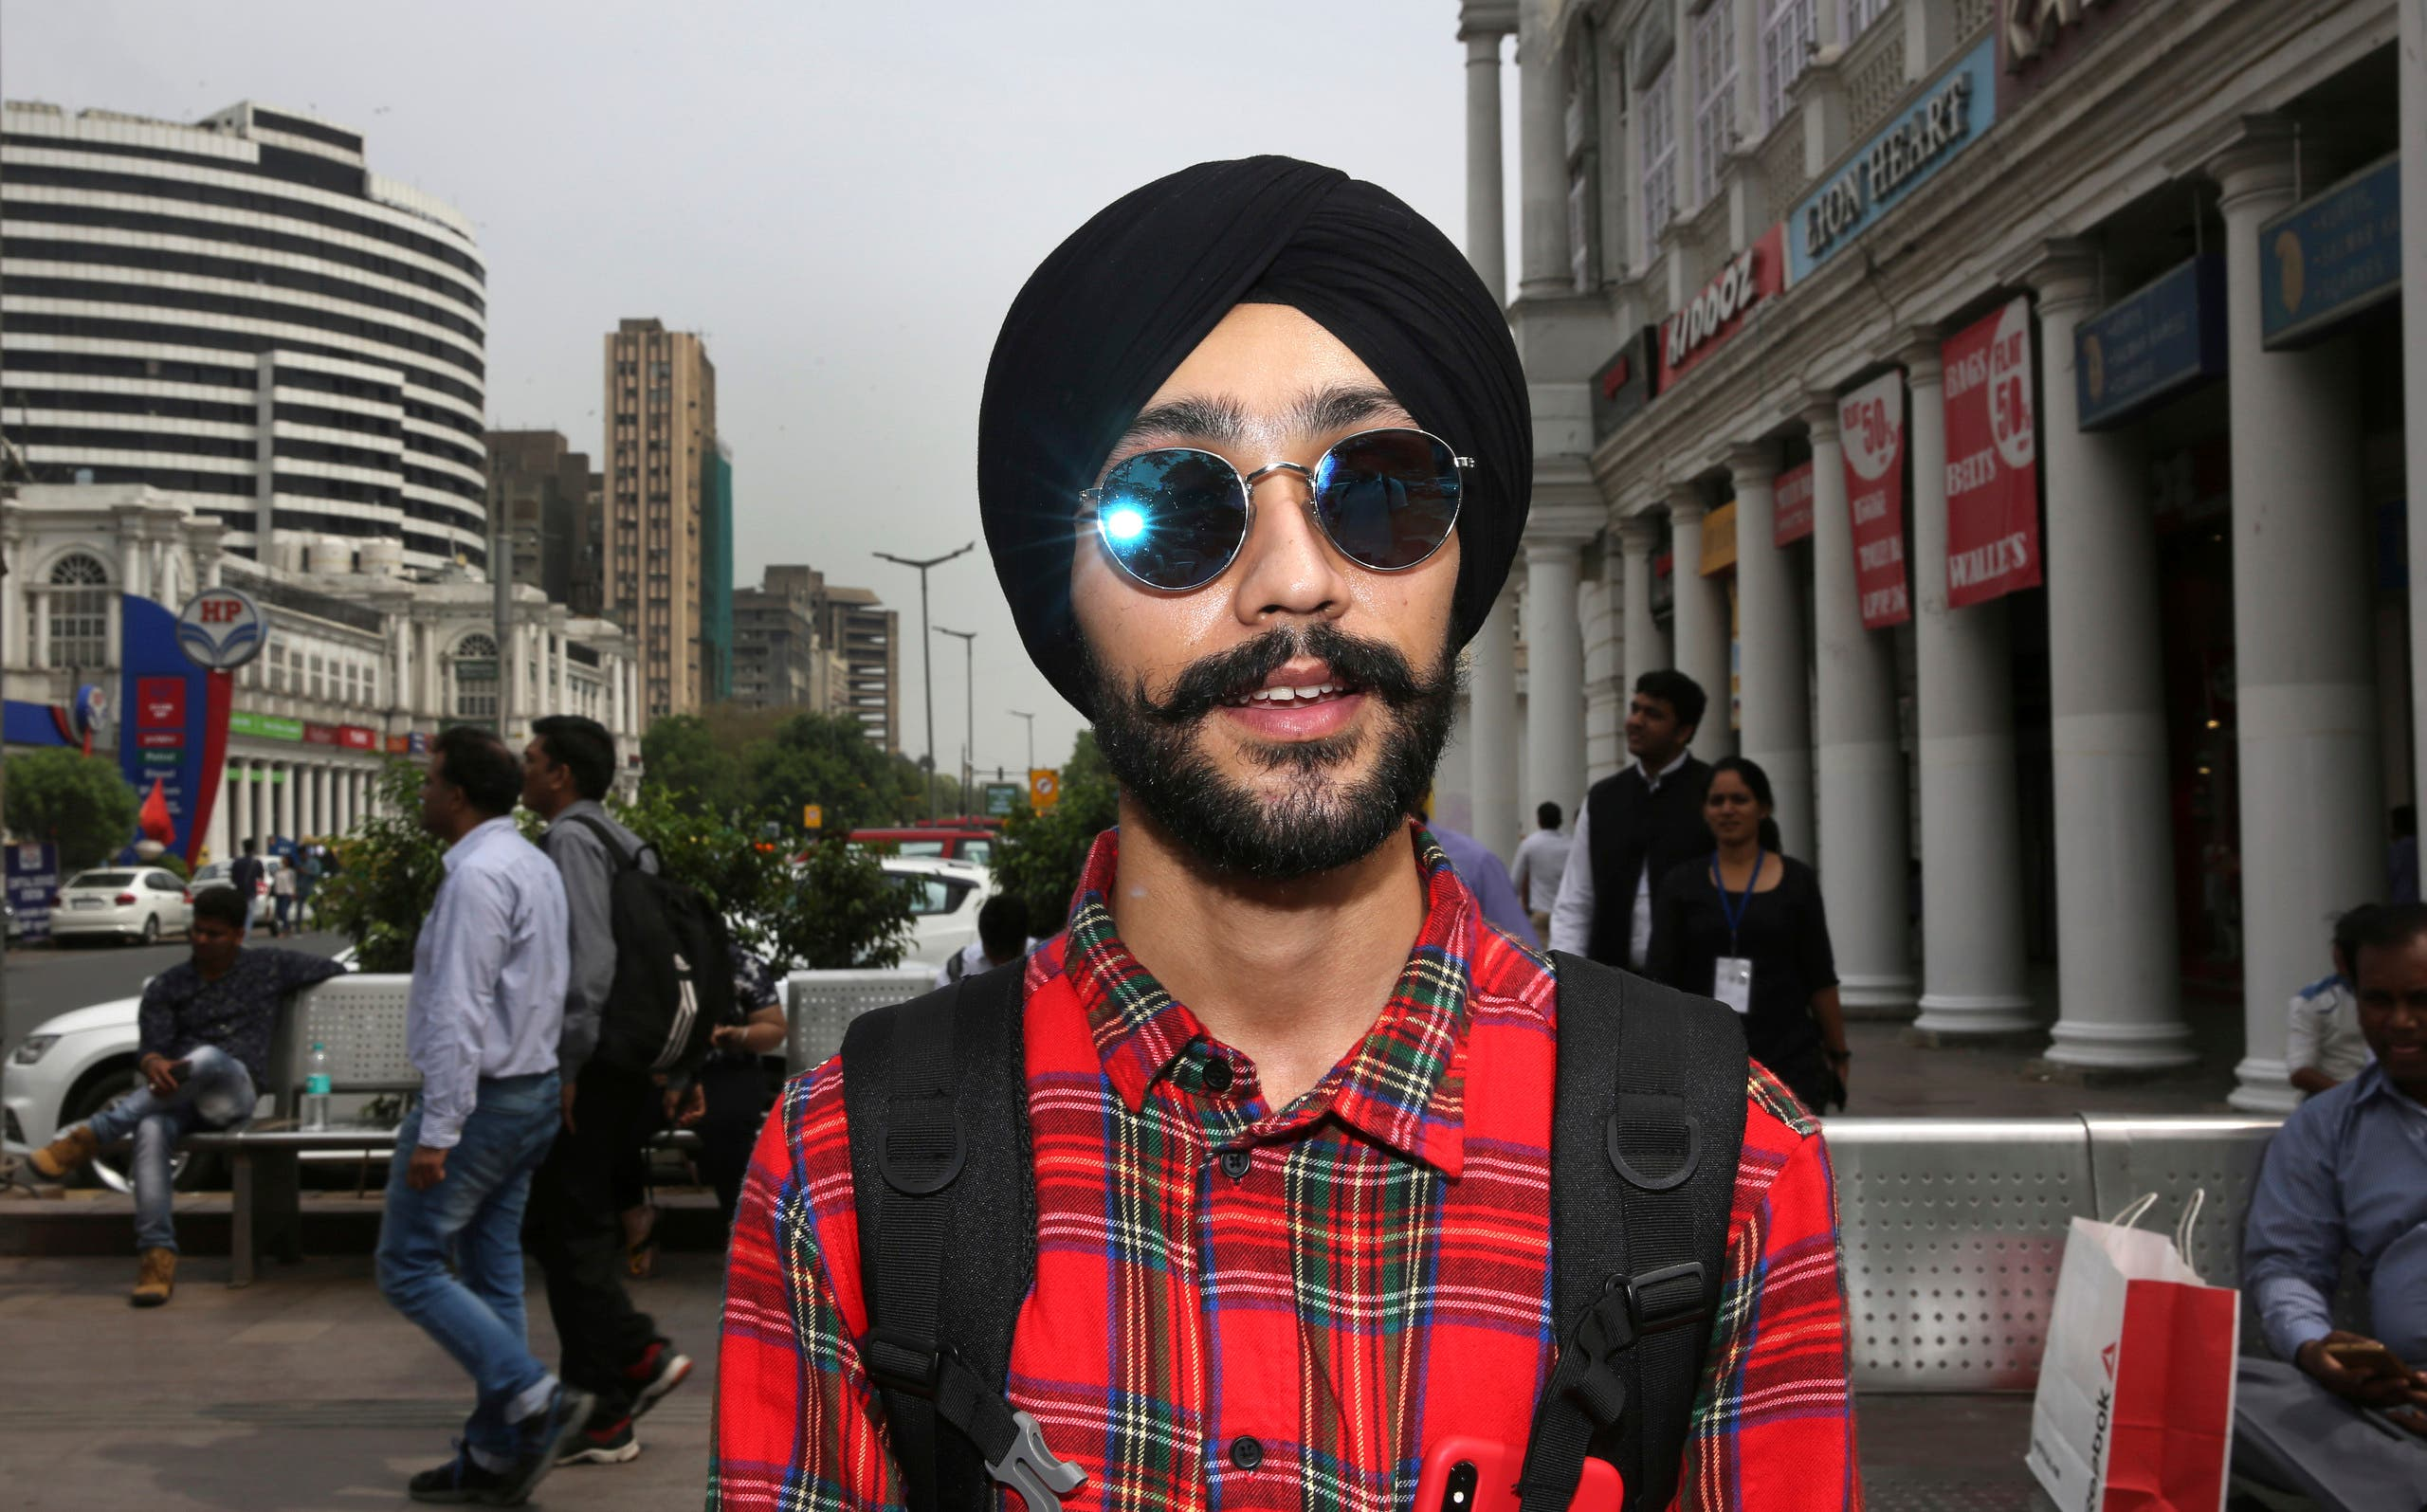 Rajanvir Singh Luthra, 23, a You Tube vlogger, stands for a photograph in New Delhi, India. (AP)